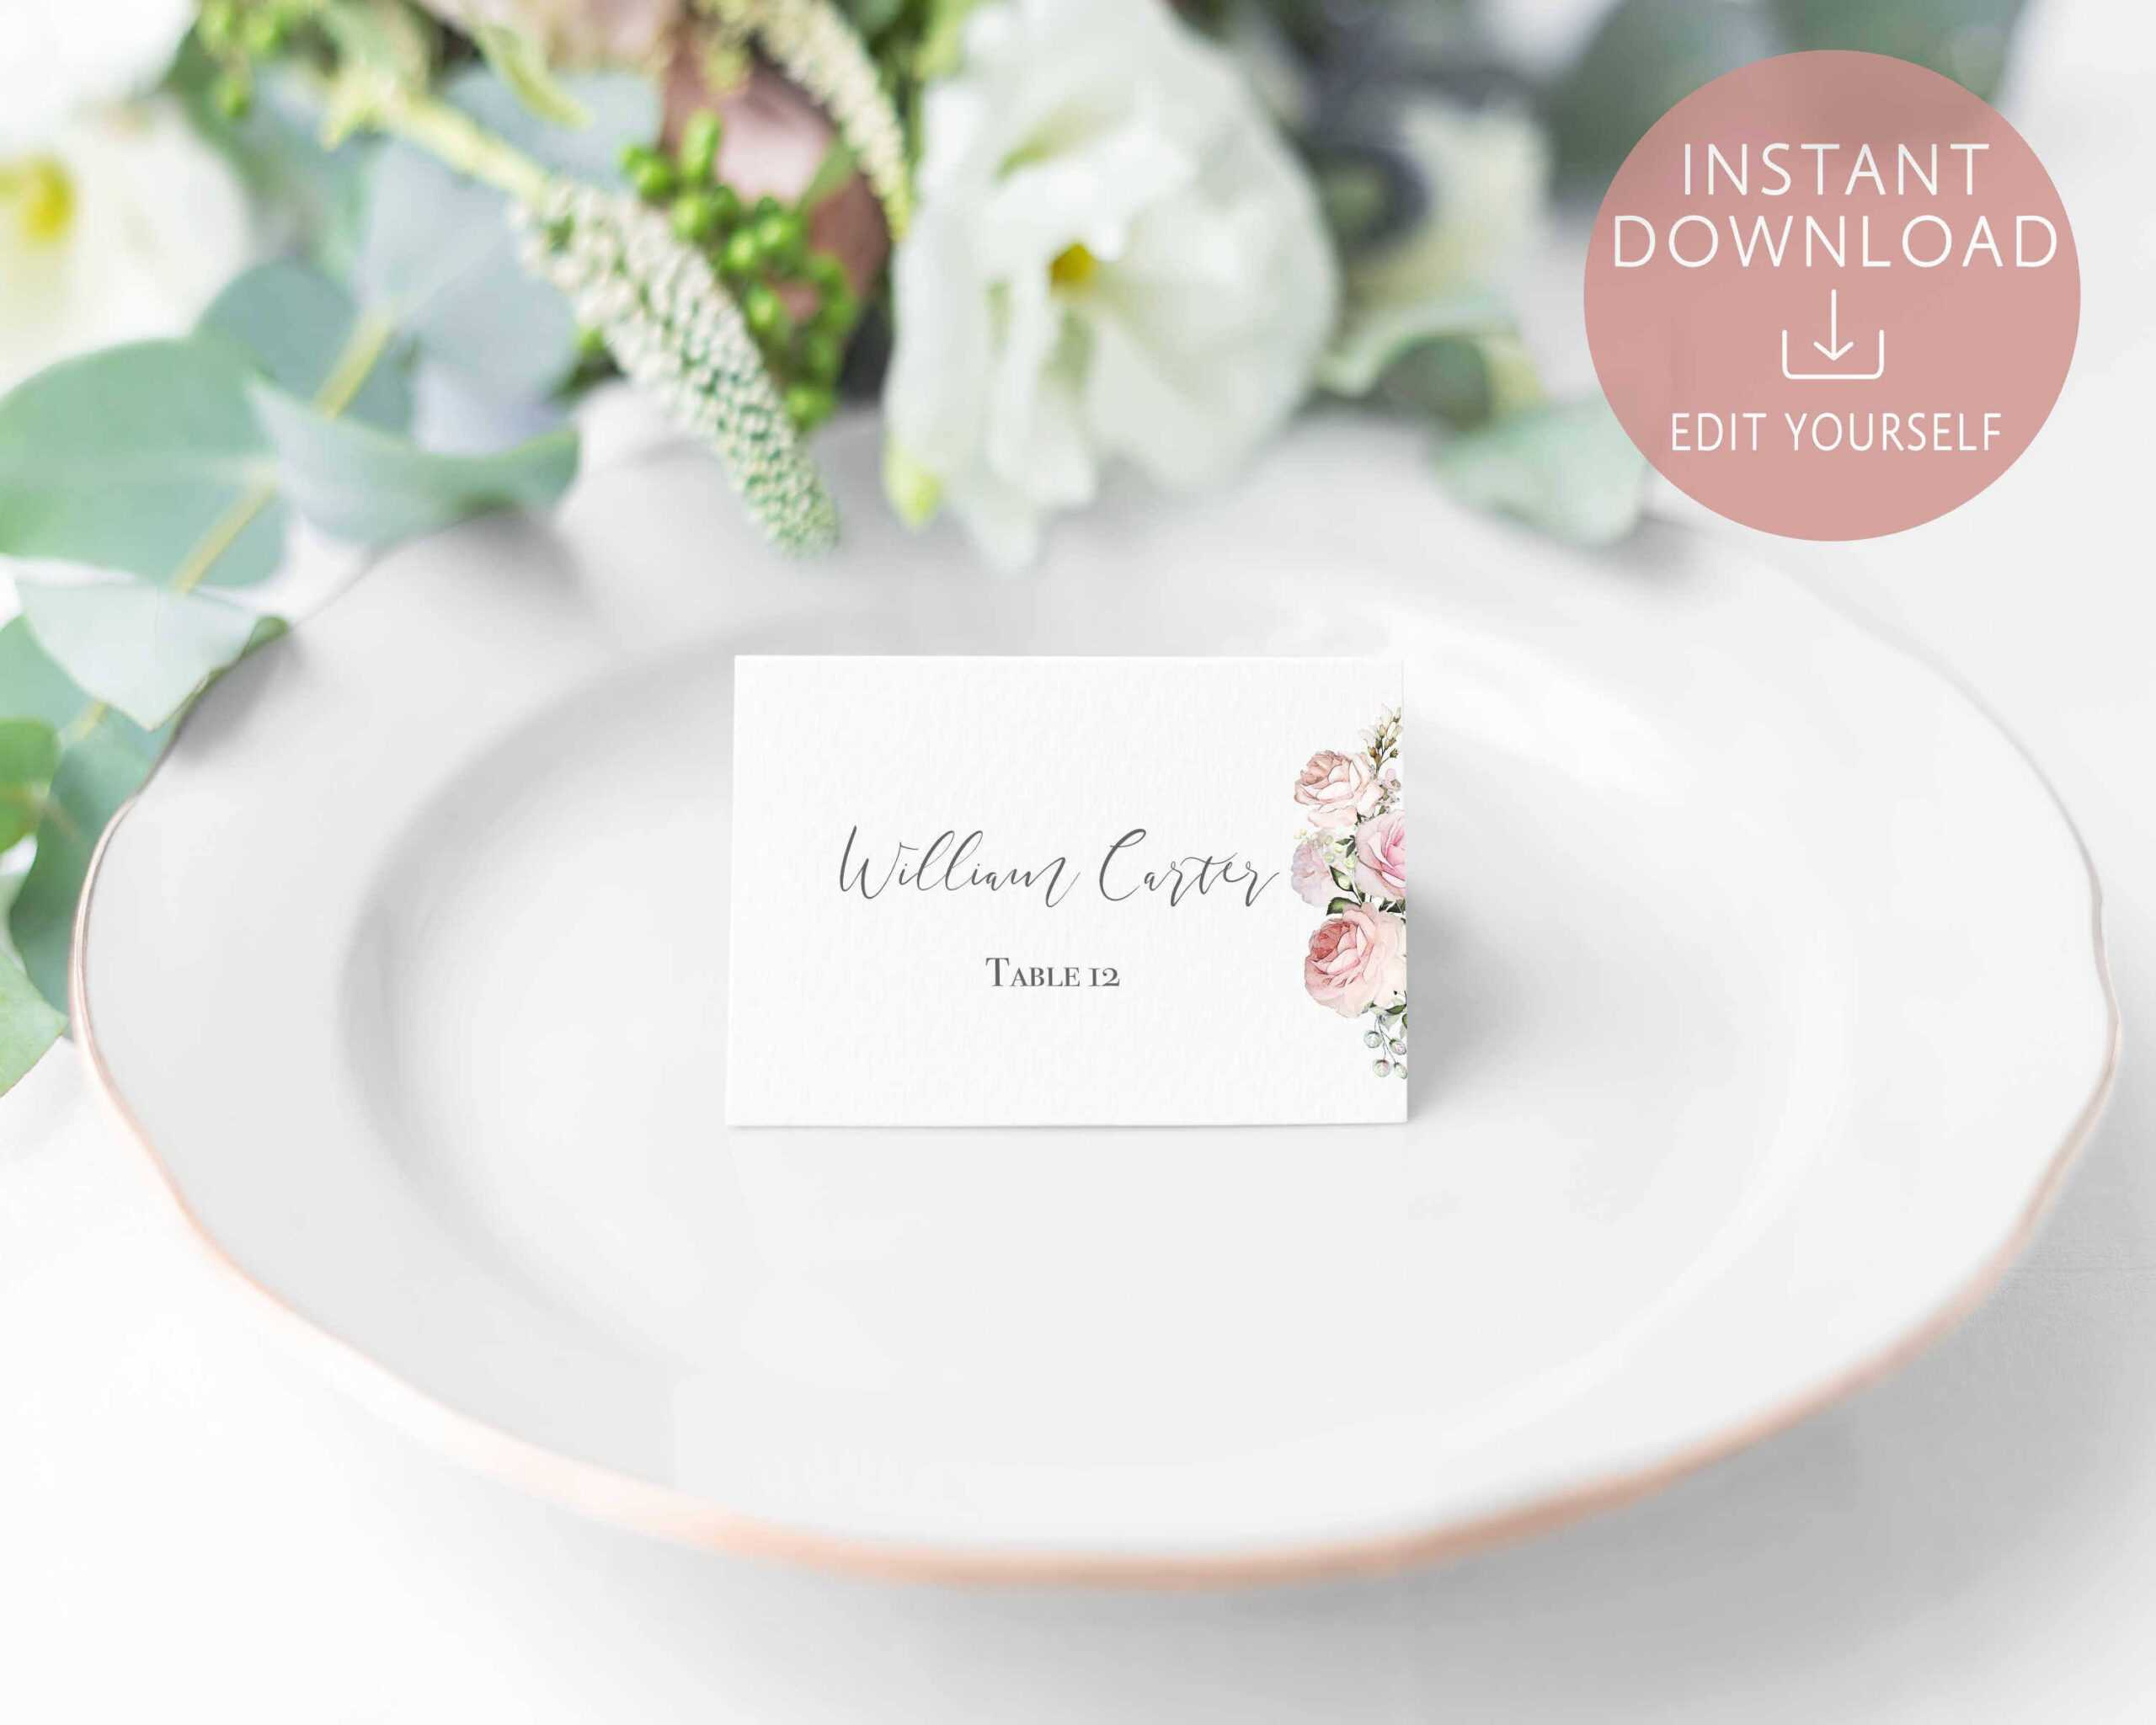 004 Template Ideas Name Place Cards Marvelous Card Free With Christmas Table Place Cards Template